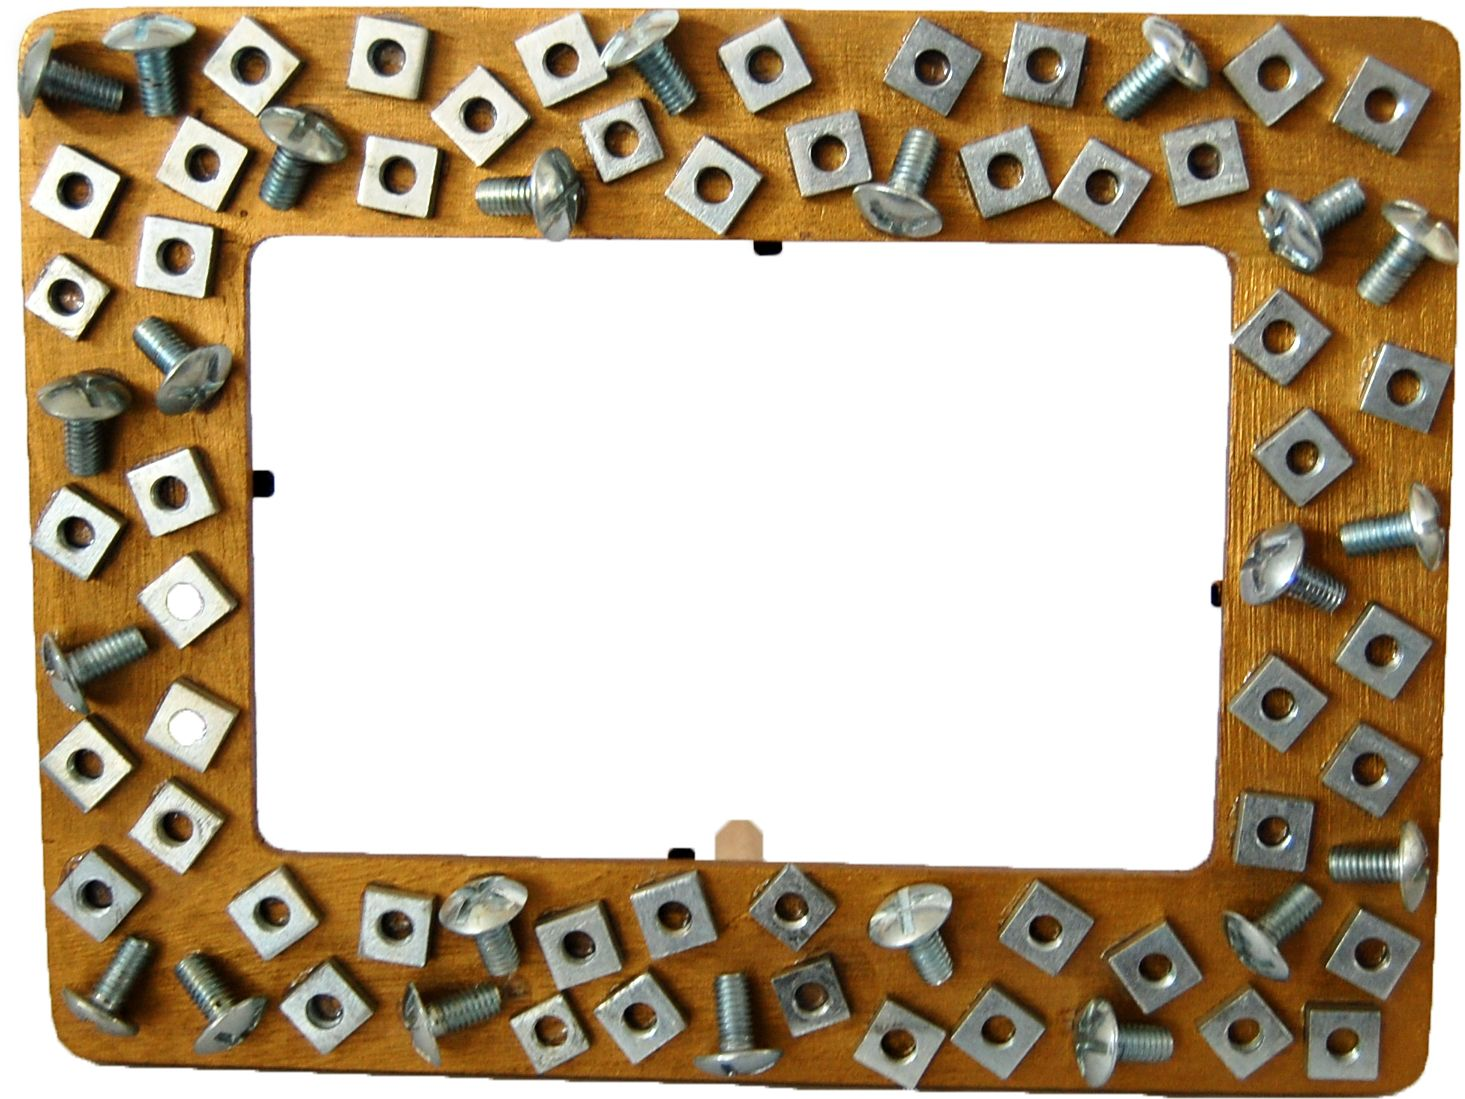 Make your own nuts and bolts picture frame photo frame. We sell ...